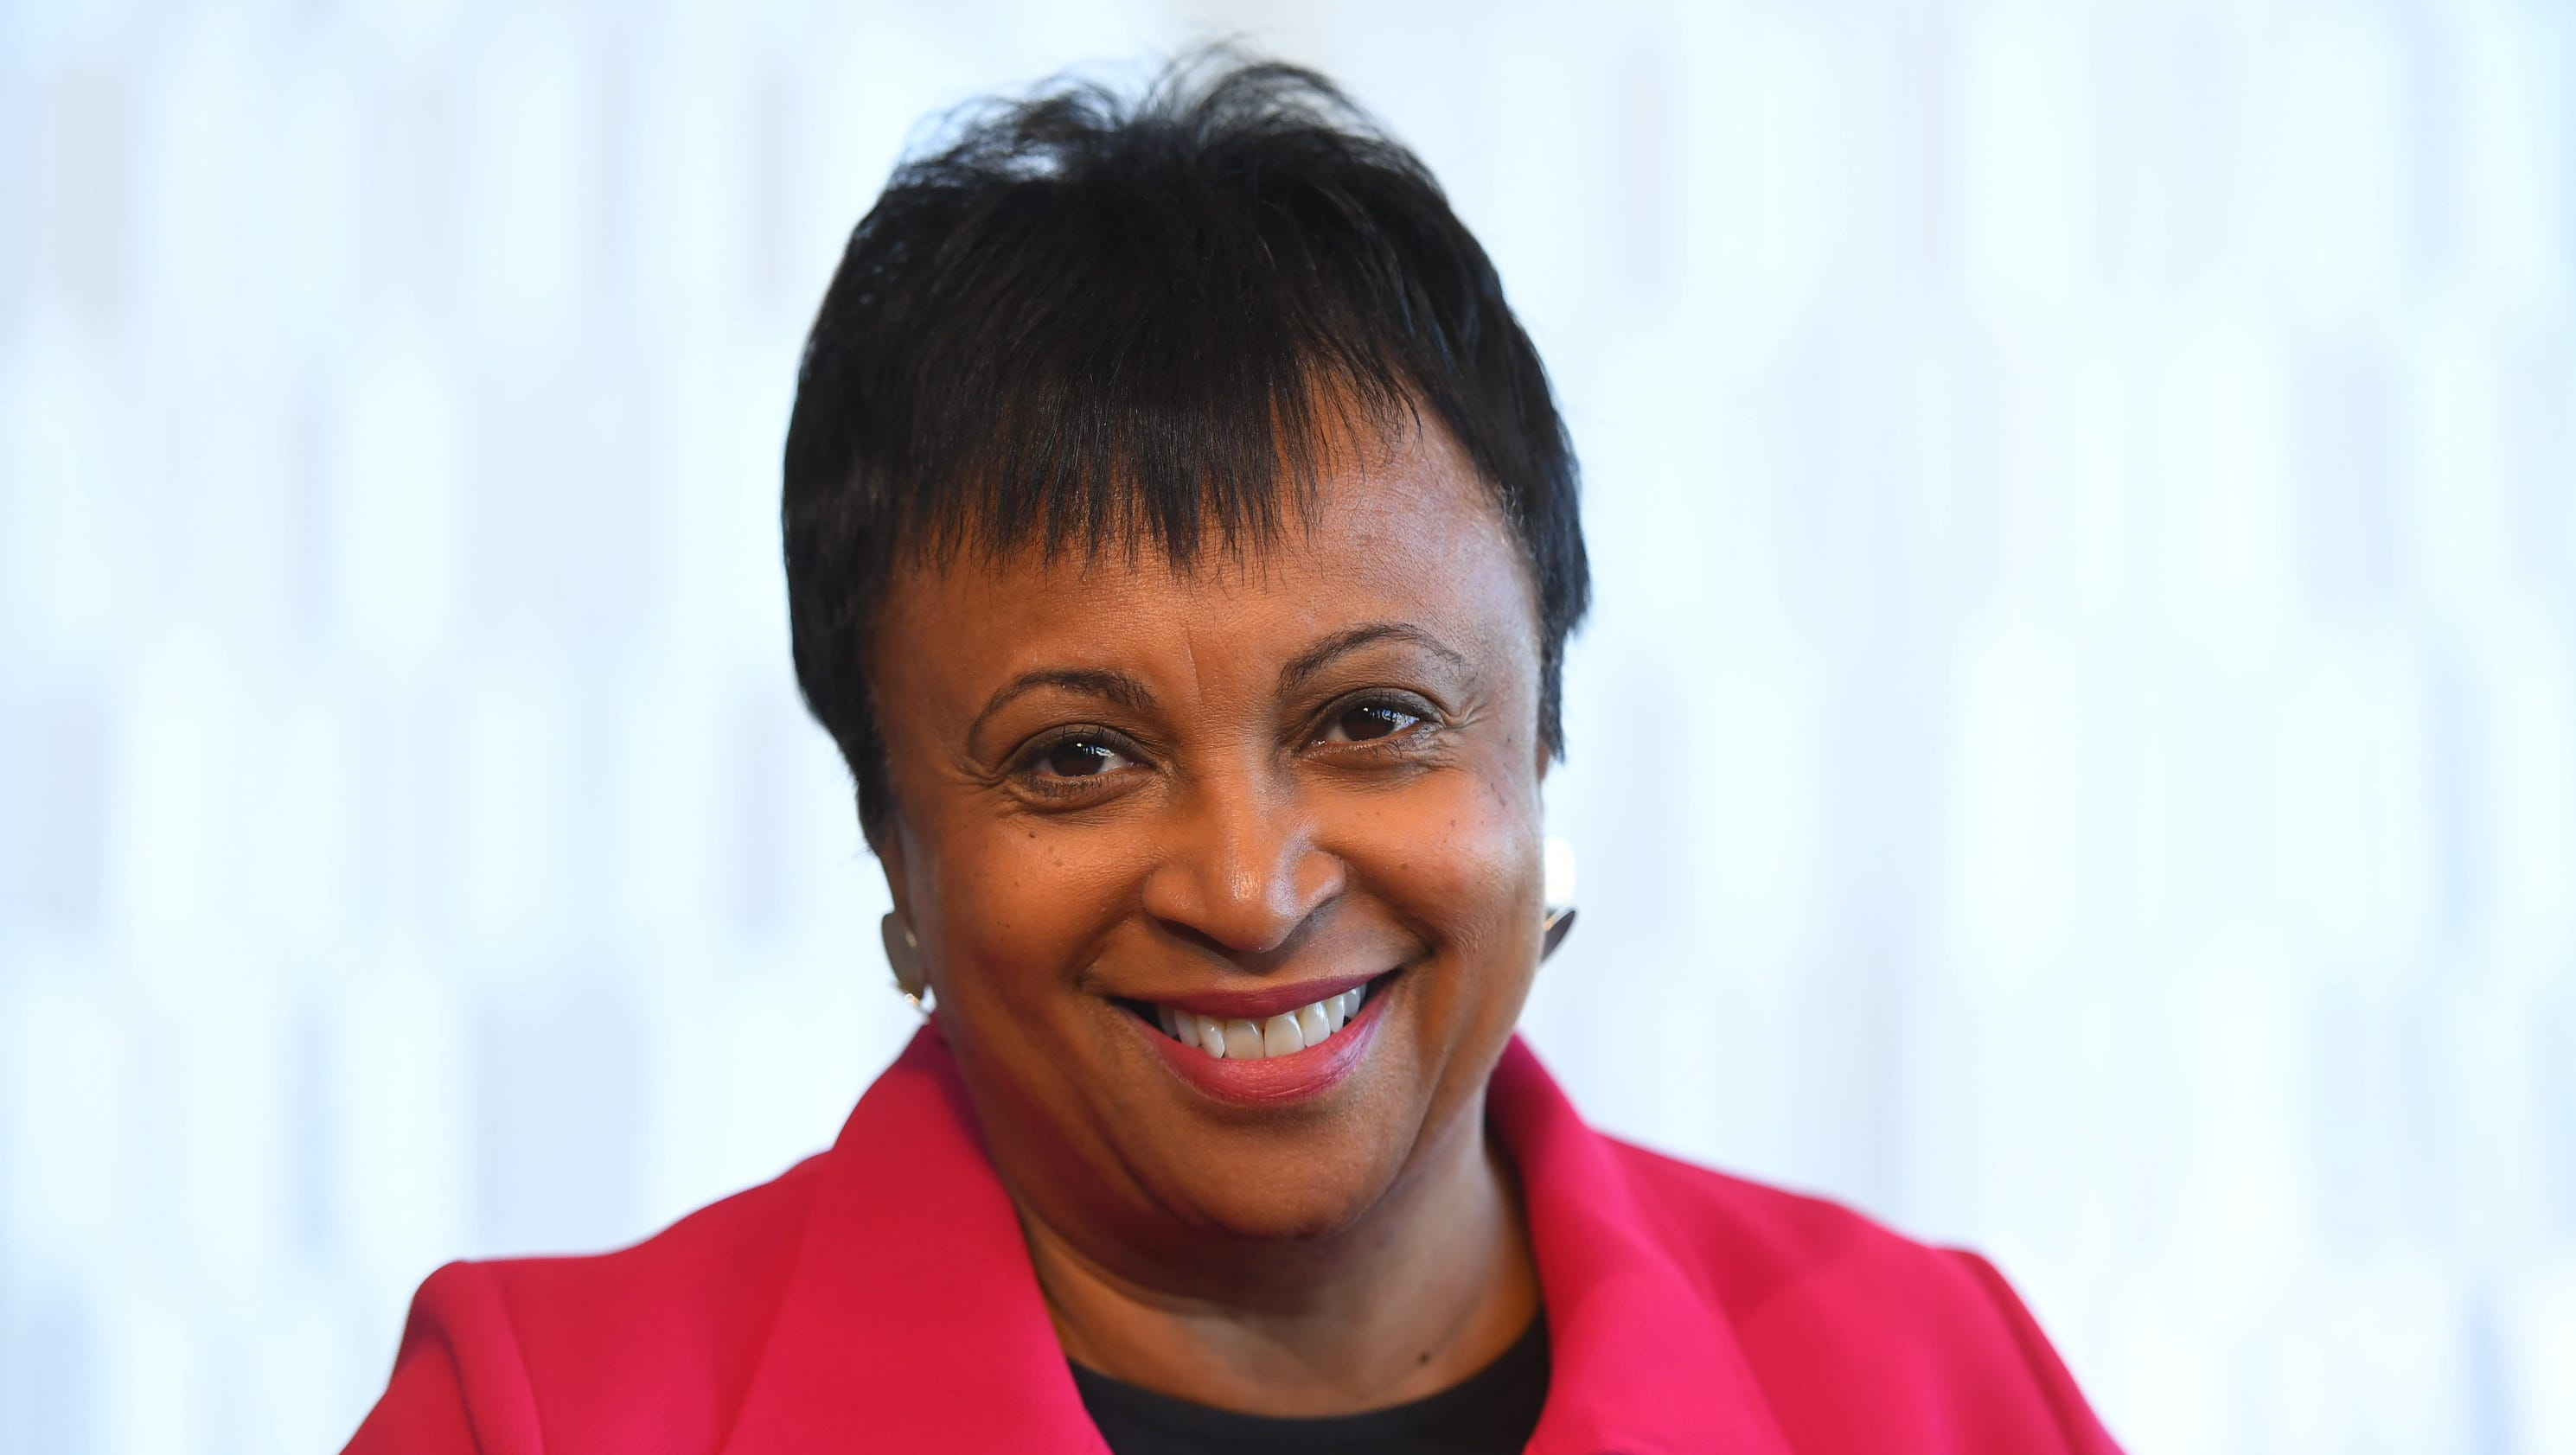 Carla Hayden becomes the first woman first black to lead Library. Carla Hayden becomes the first woman first black to lead Library of Congress